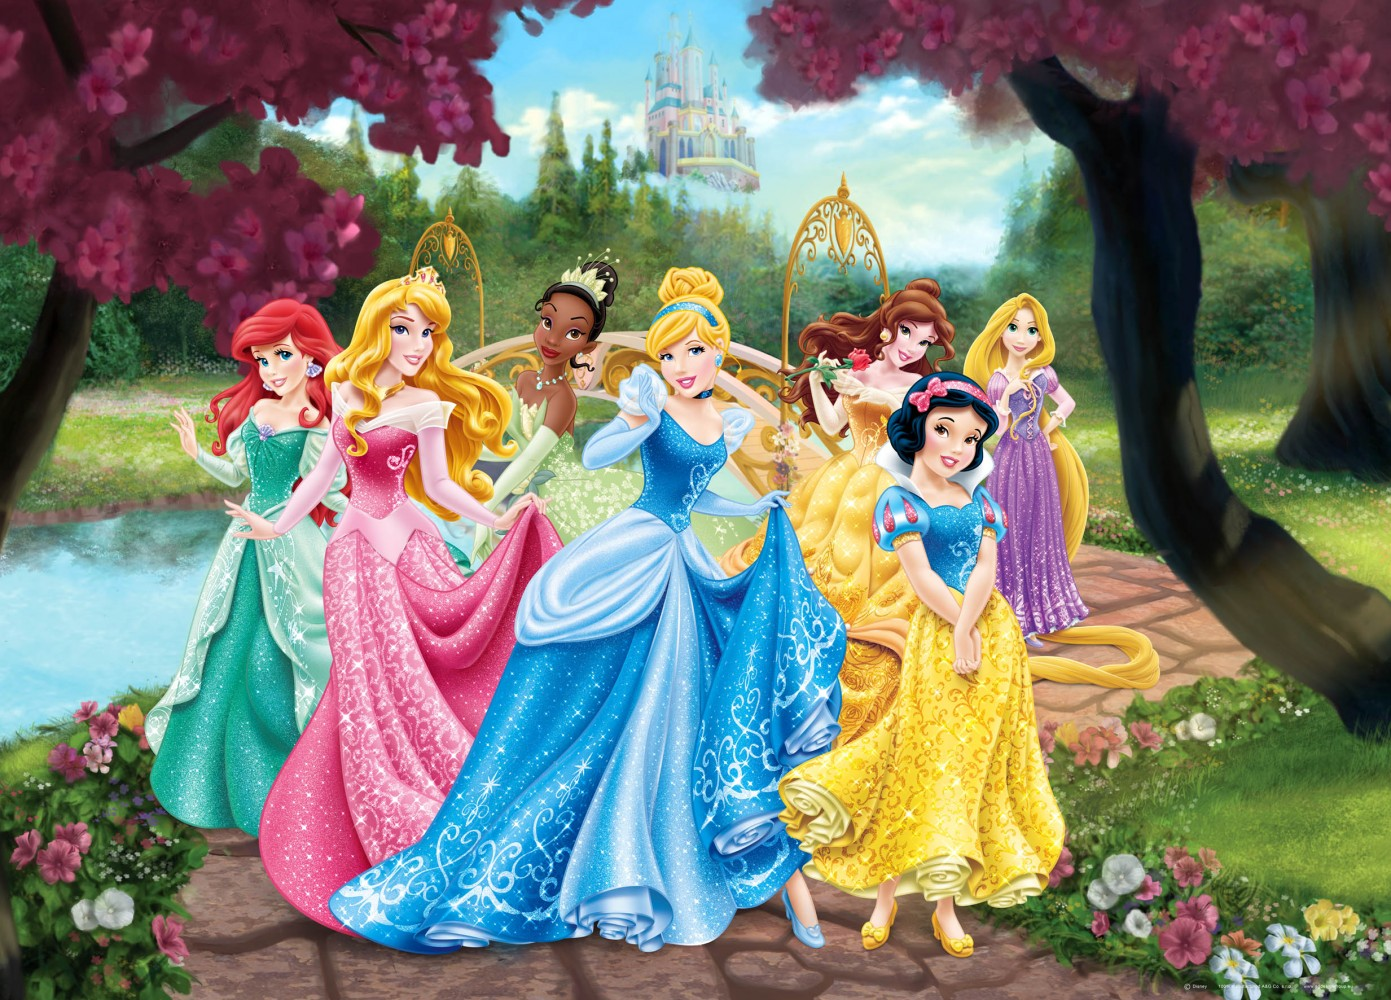 Xxl poster wall mural wallpaper disney princesses princess for Disney princess wall mural